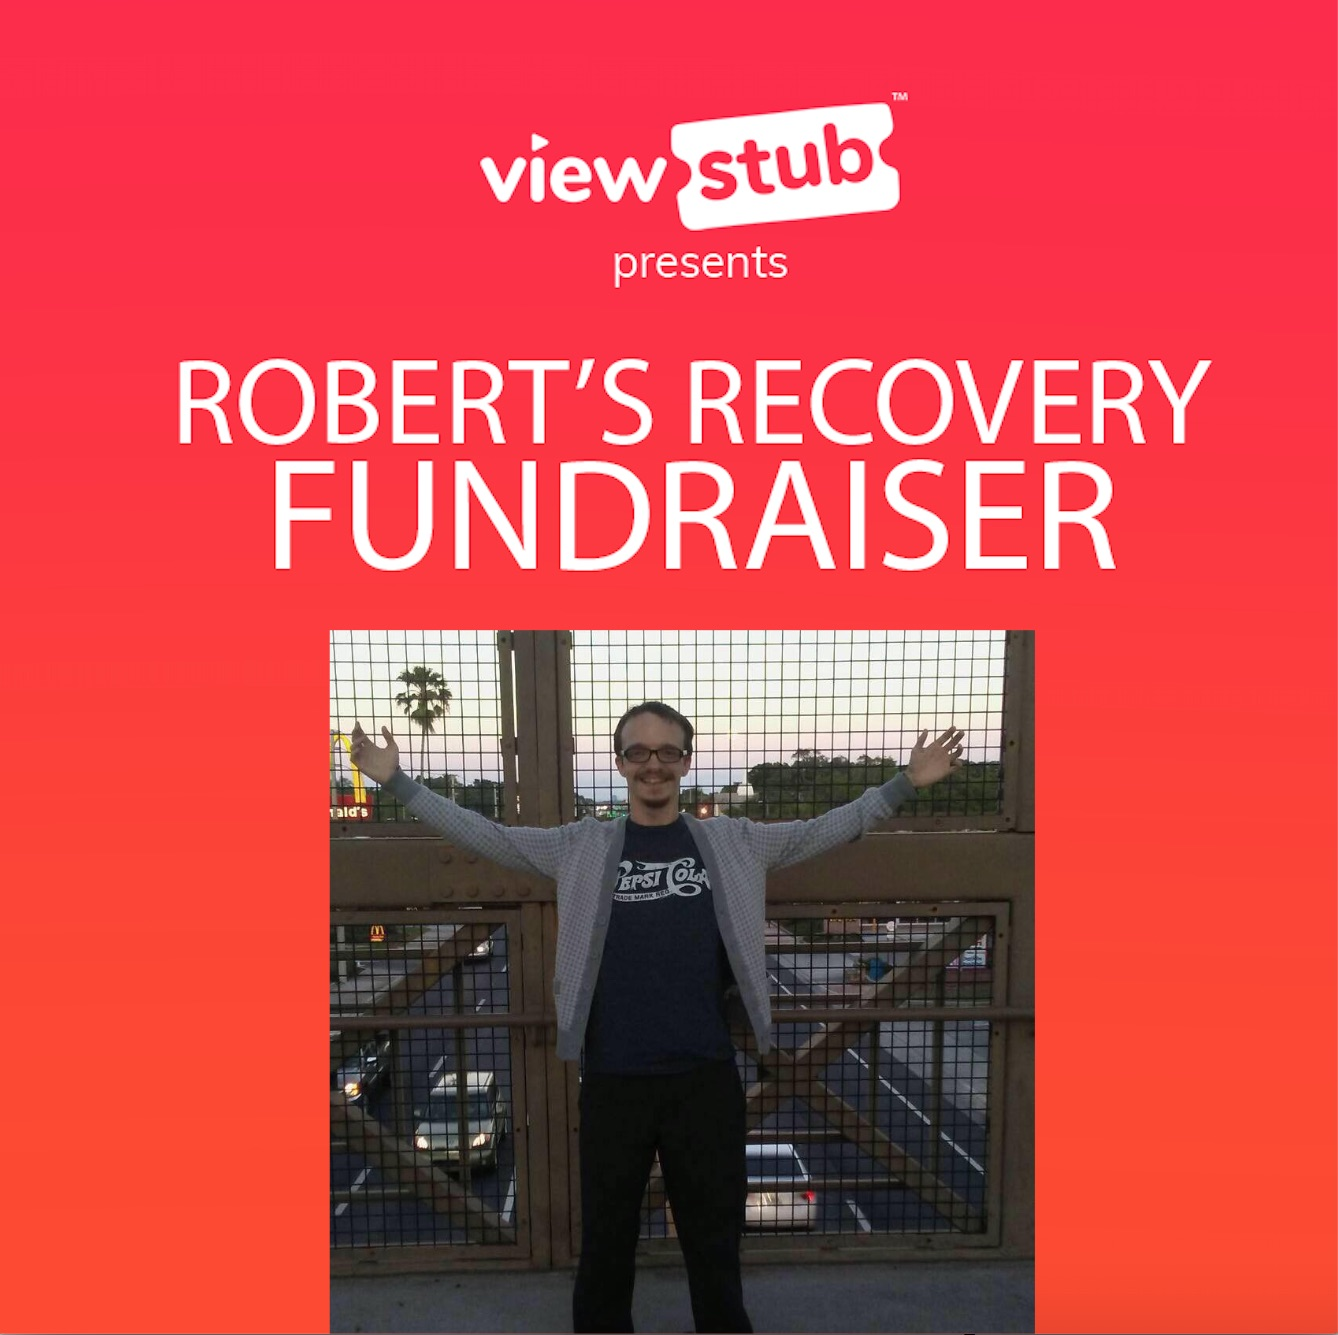 Photo for Roberts Recovery Concert Fundraiser on ViewStub